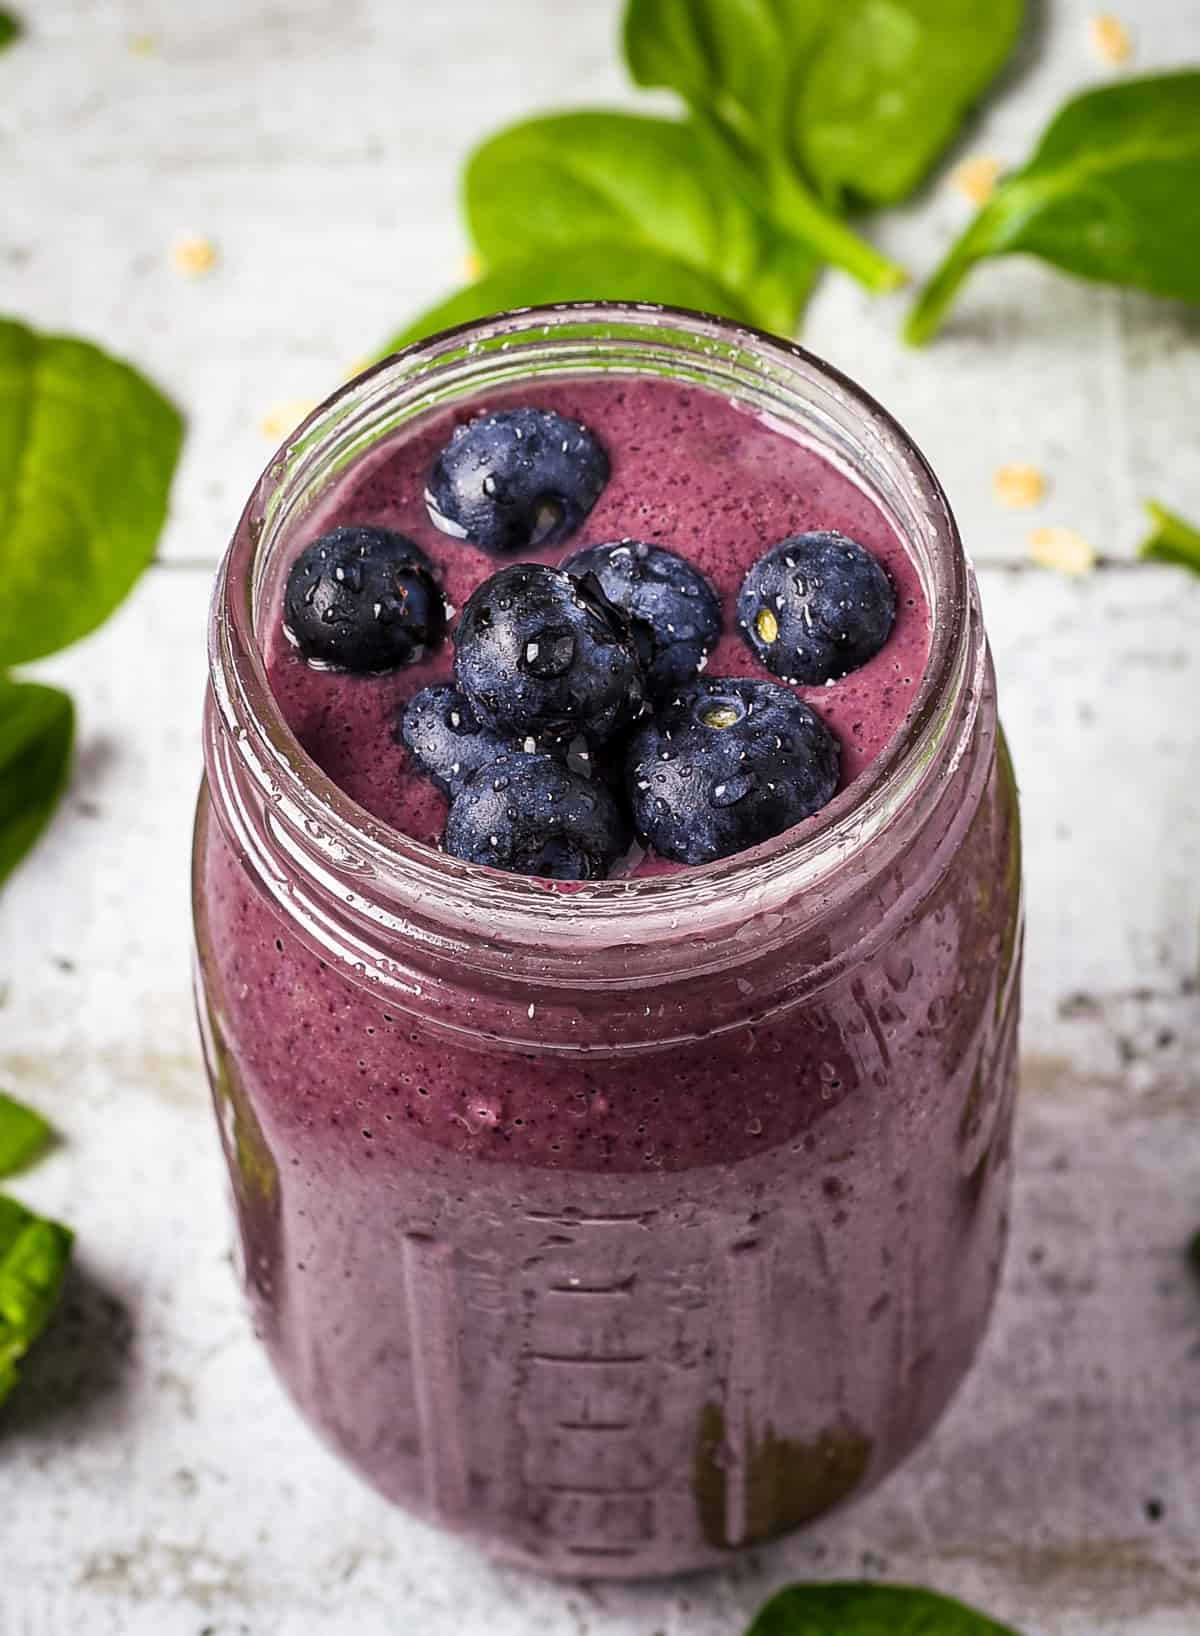 Spinach berry smoothie with fresh blueberries on top.